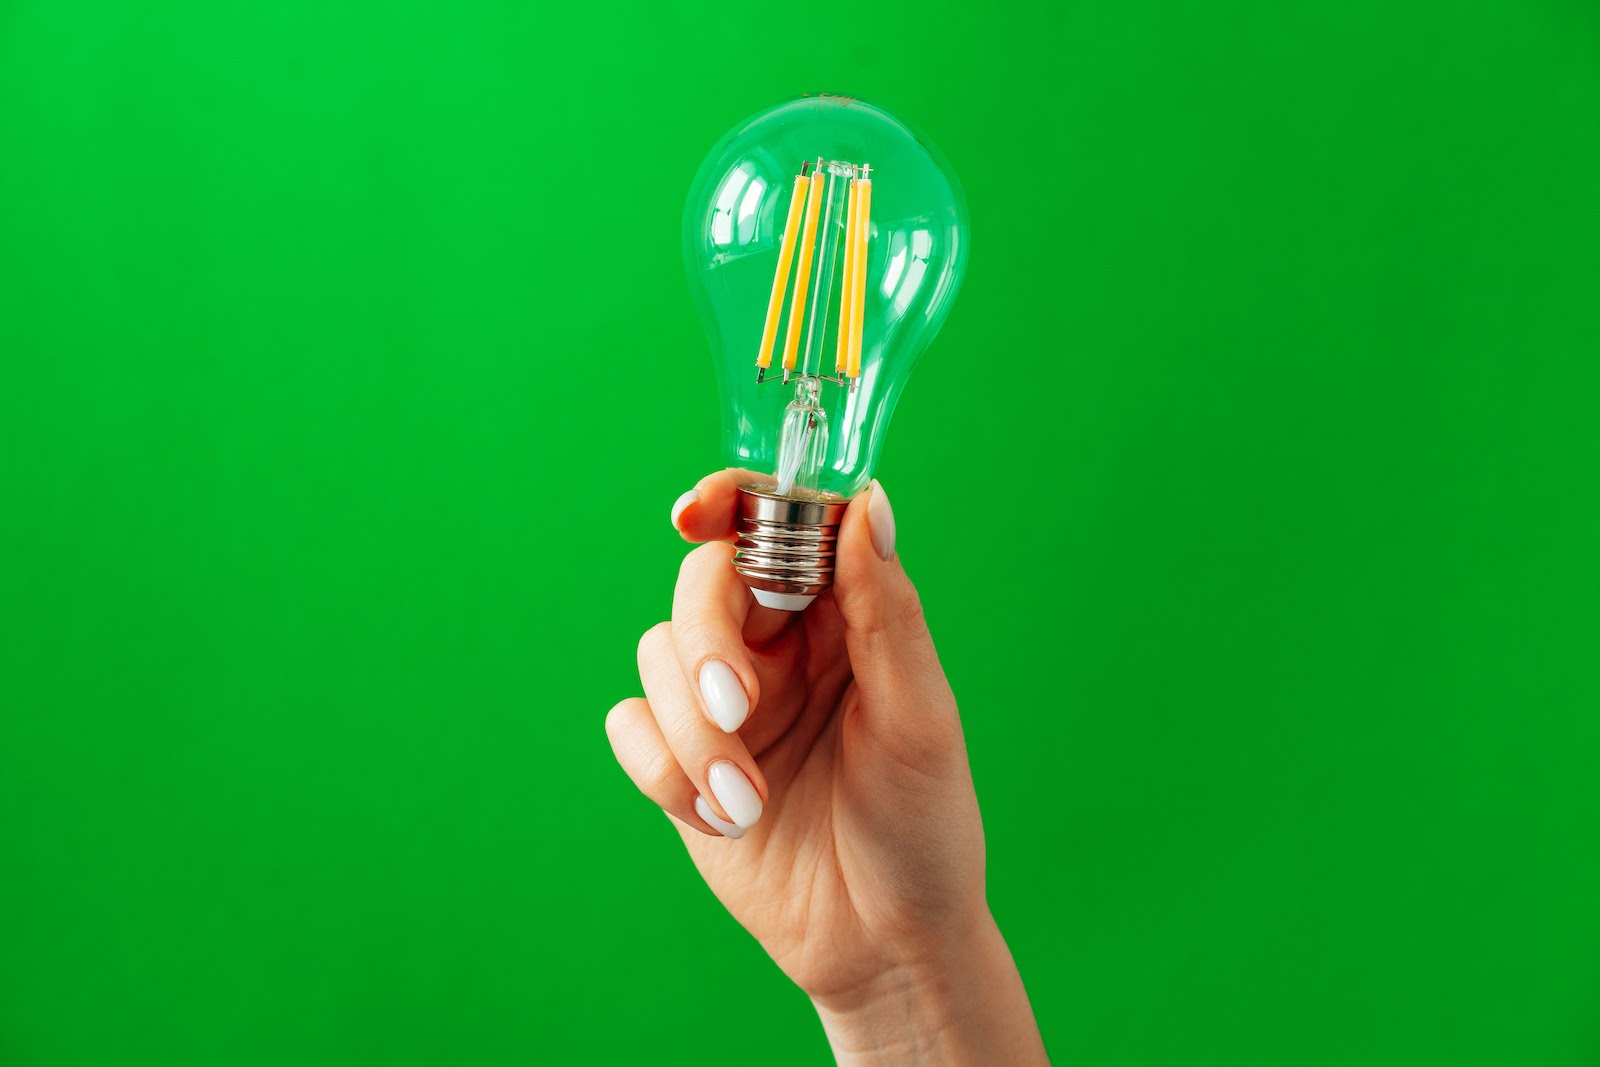 A hand holds a light bulb to represent planning a virtual trade show